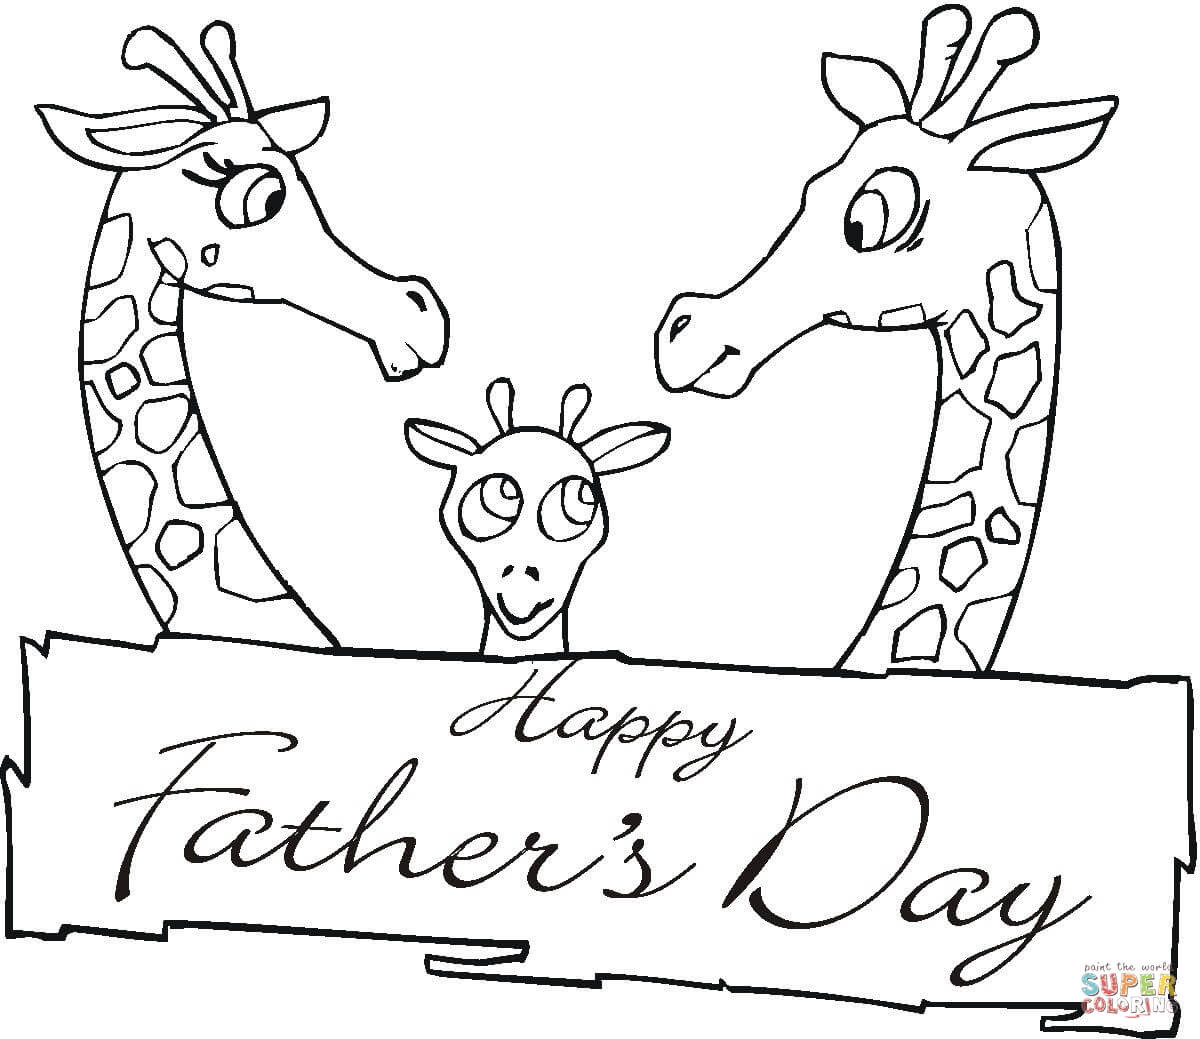 Best ideas about Fathers Day Coloring Pages For Kids . Save or Pin Giraffes To her Father s Day coloring page Now.